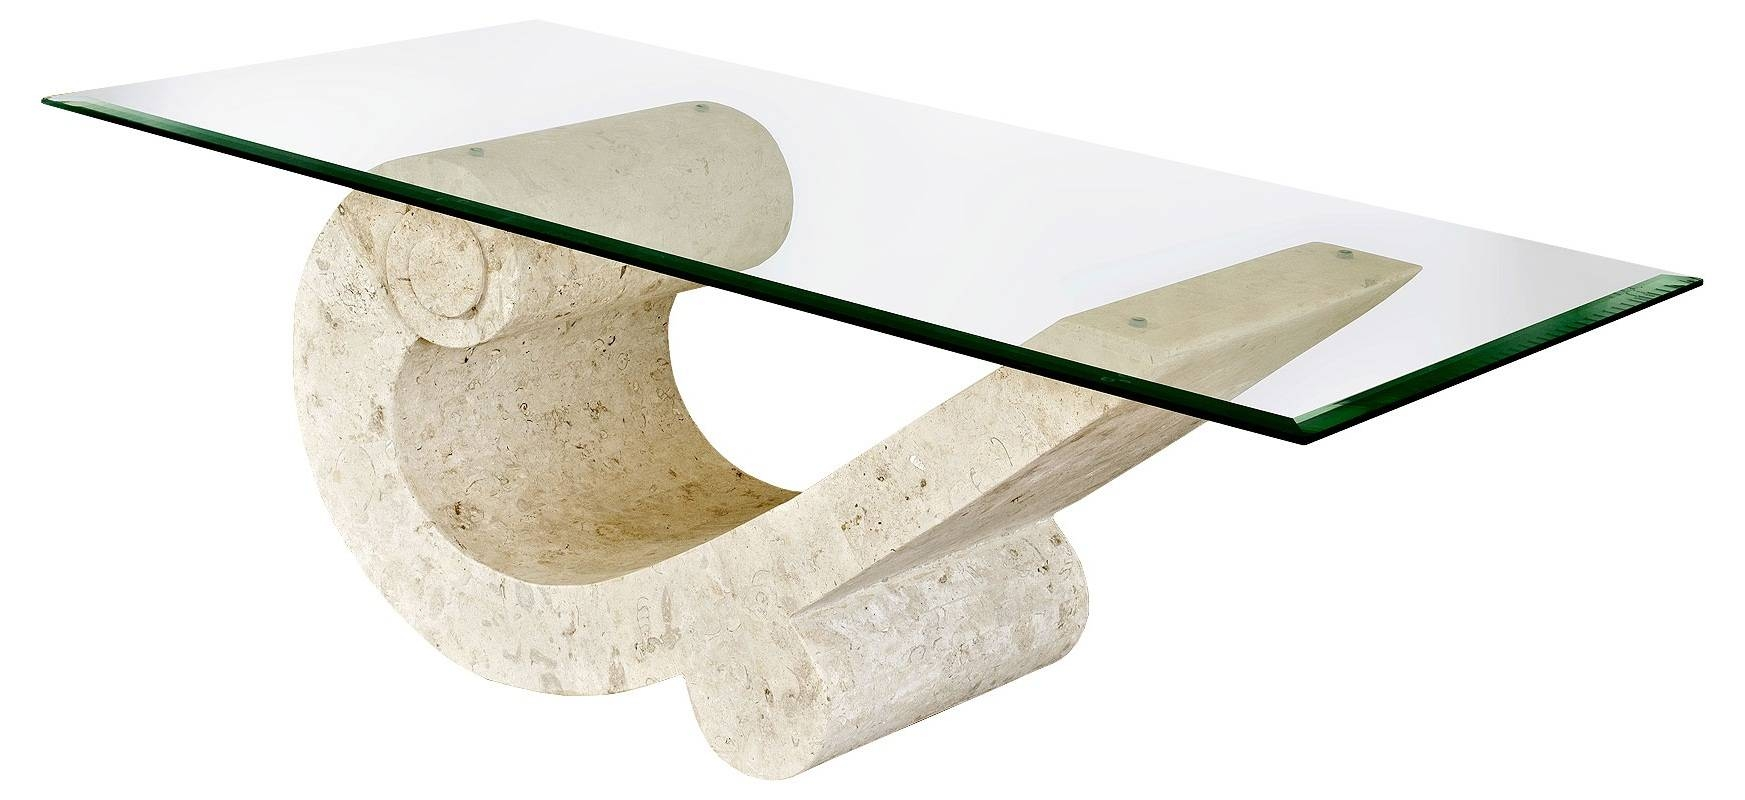 Great Marble Base Glass Top Coffee Table 23 For Home Design Ideas within Marble Base Glass Top Coffee Table (Image 9 of 15)